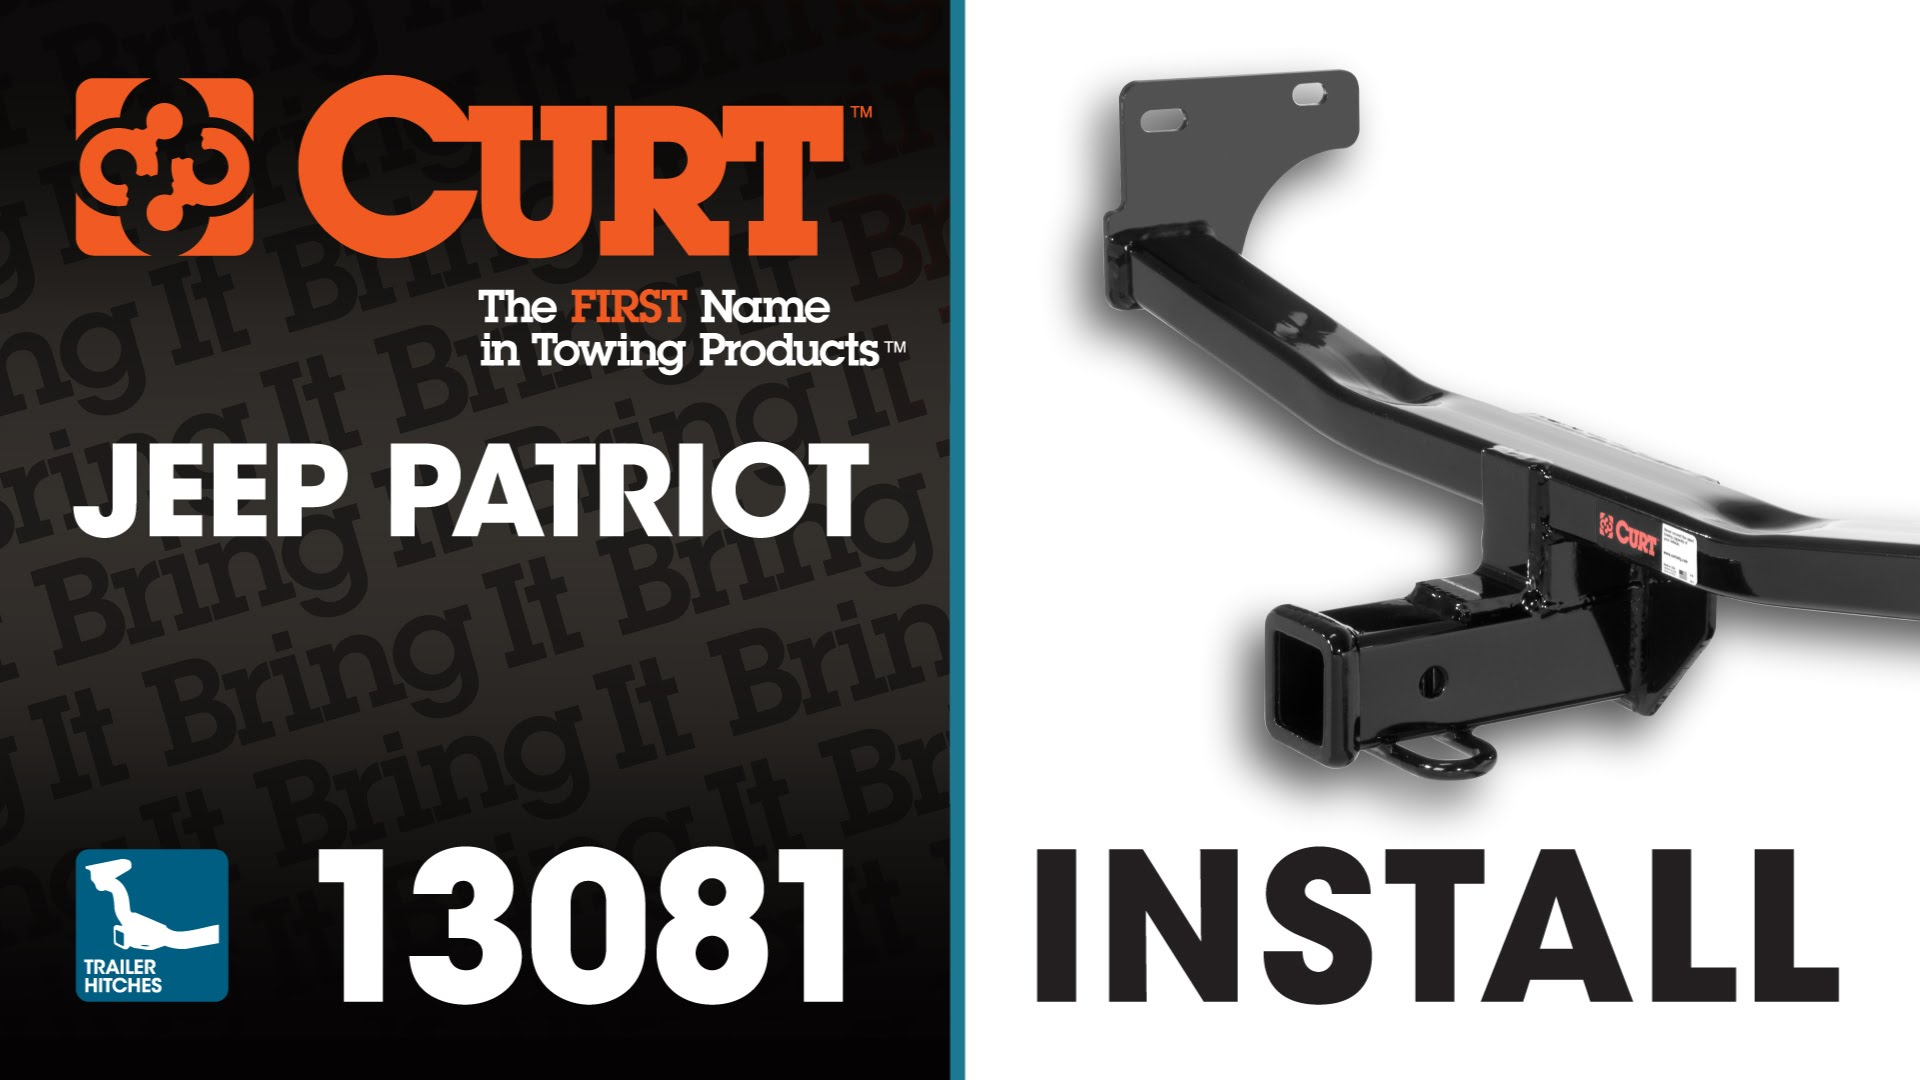 Trailer Hitch Install CURT 13081 on a Jeep Patriot